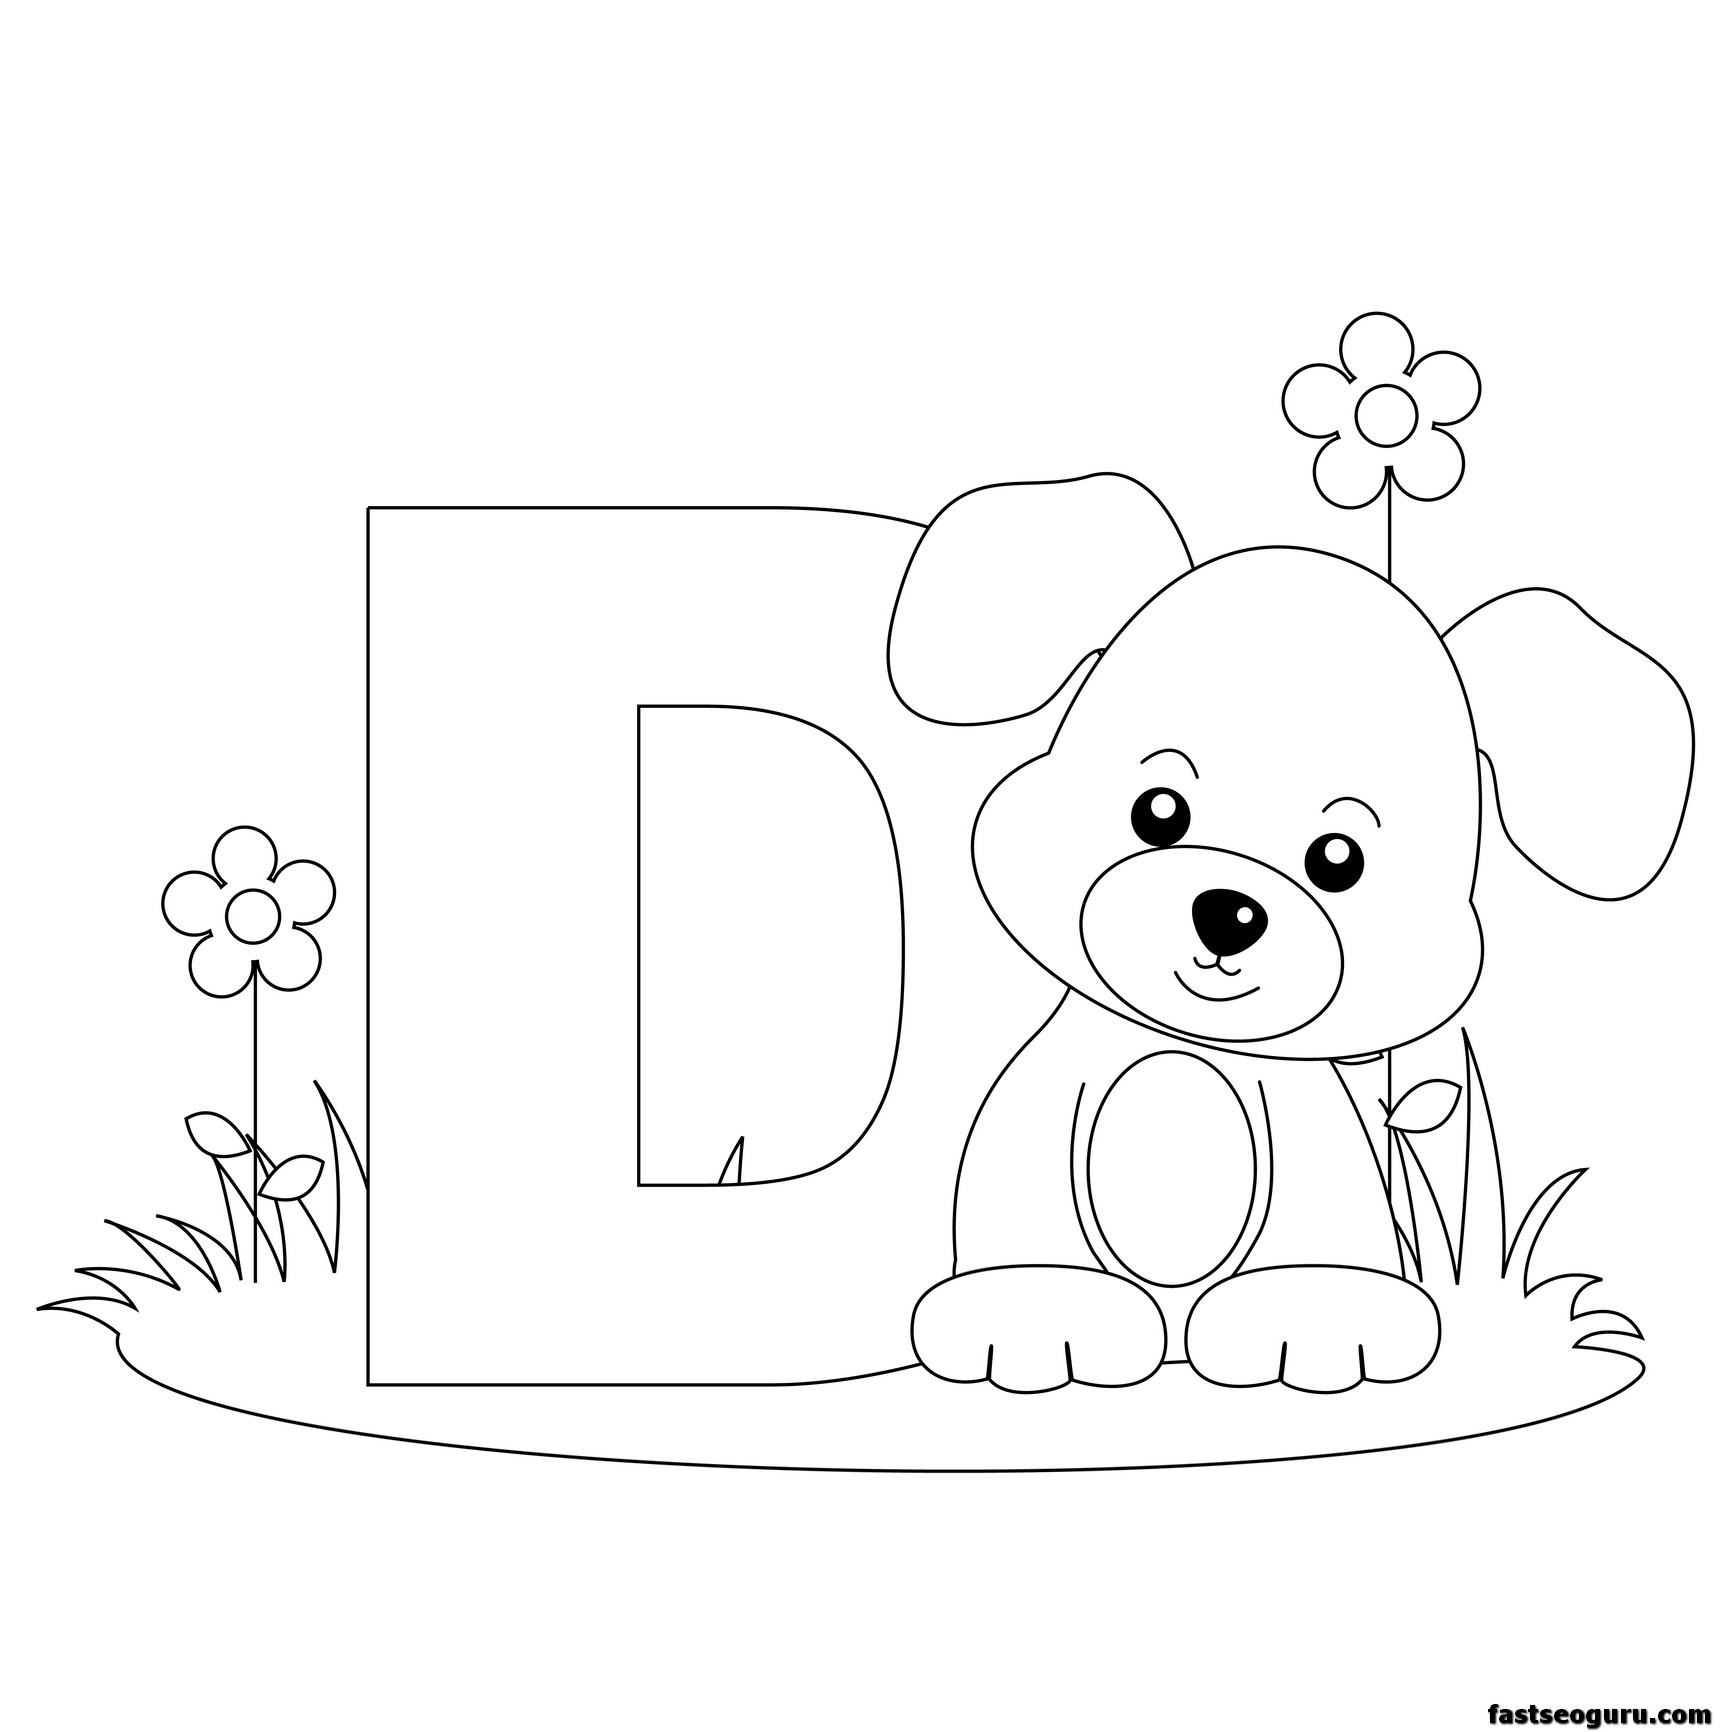 Printable Animal Alphabet Worksheets Letter D For Dog